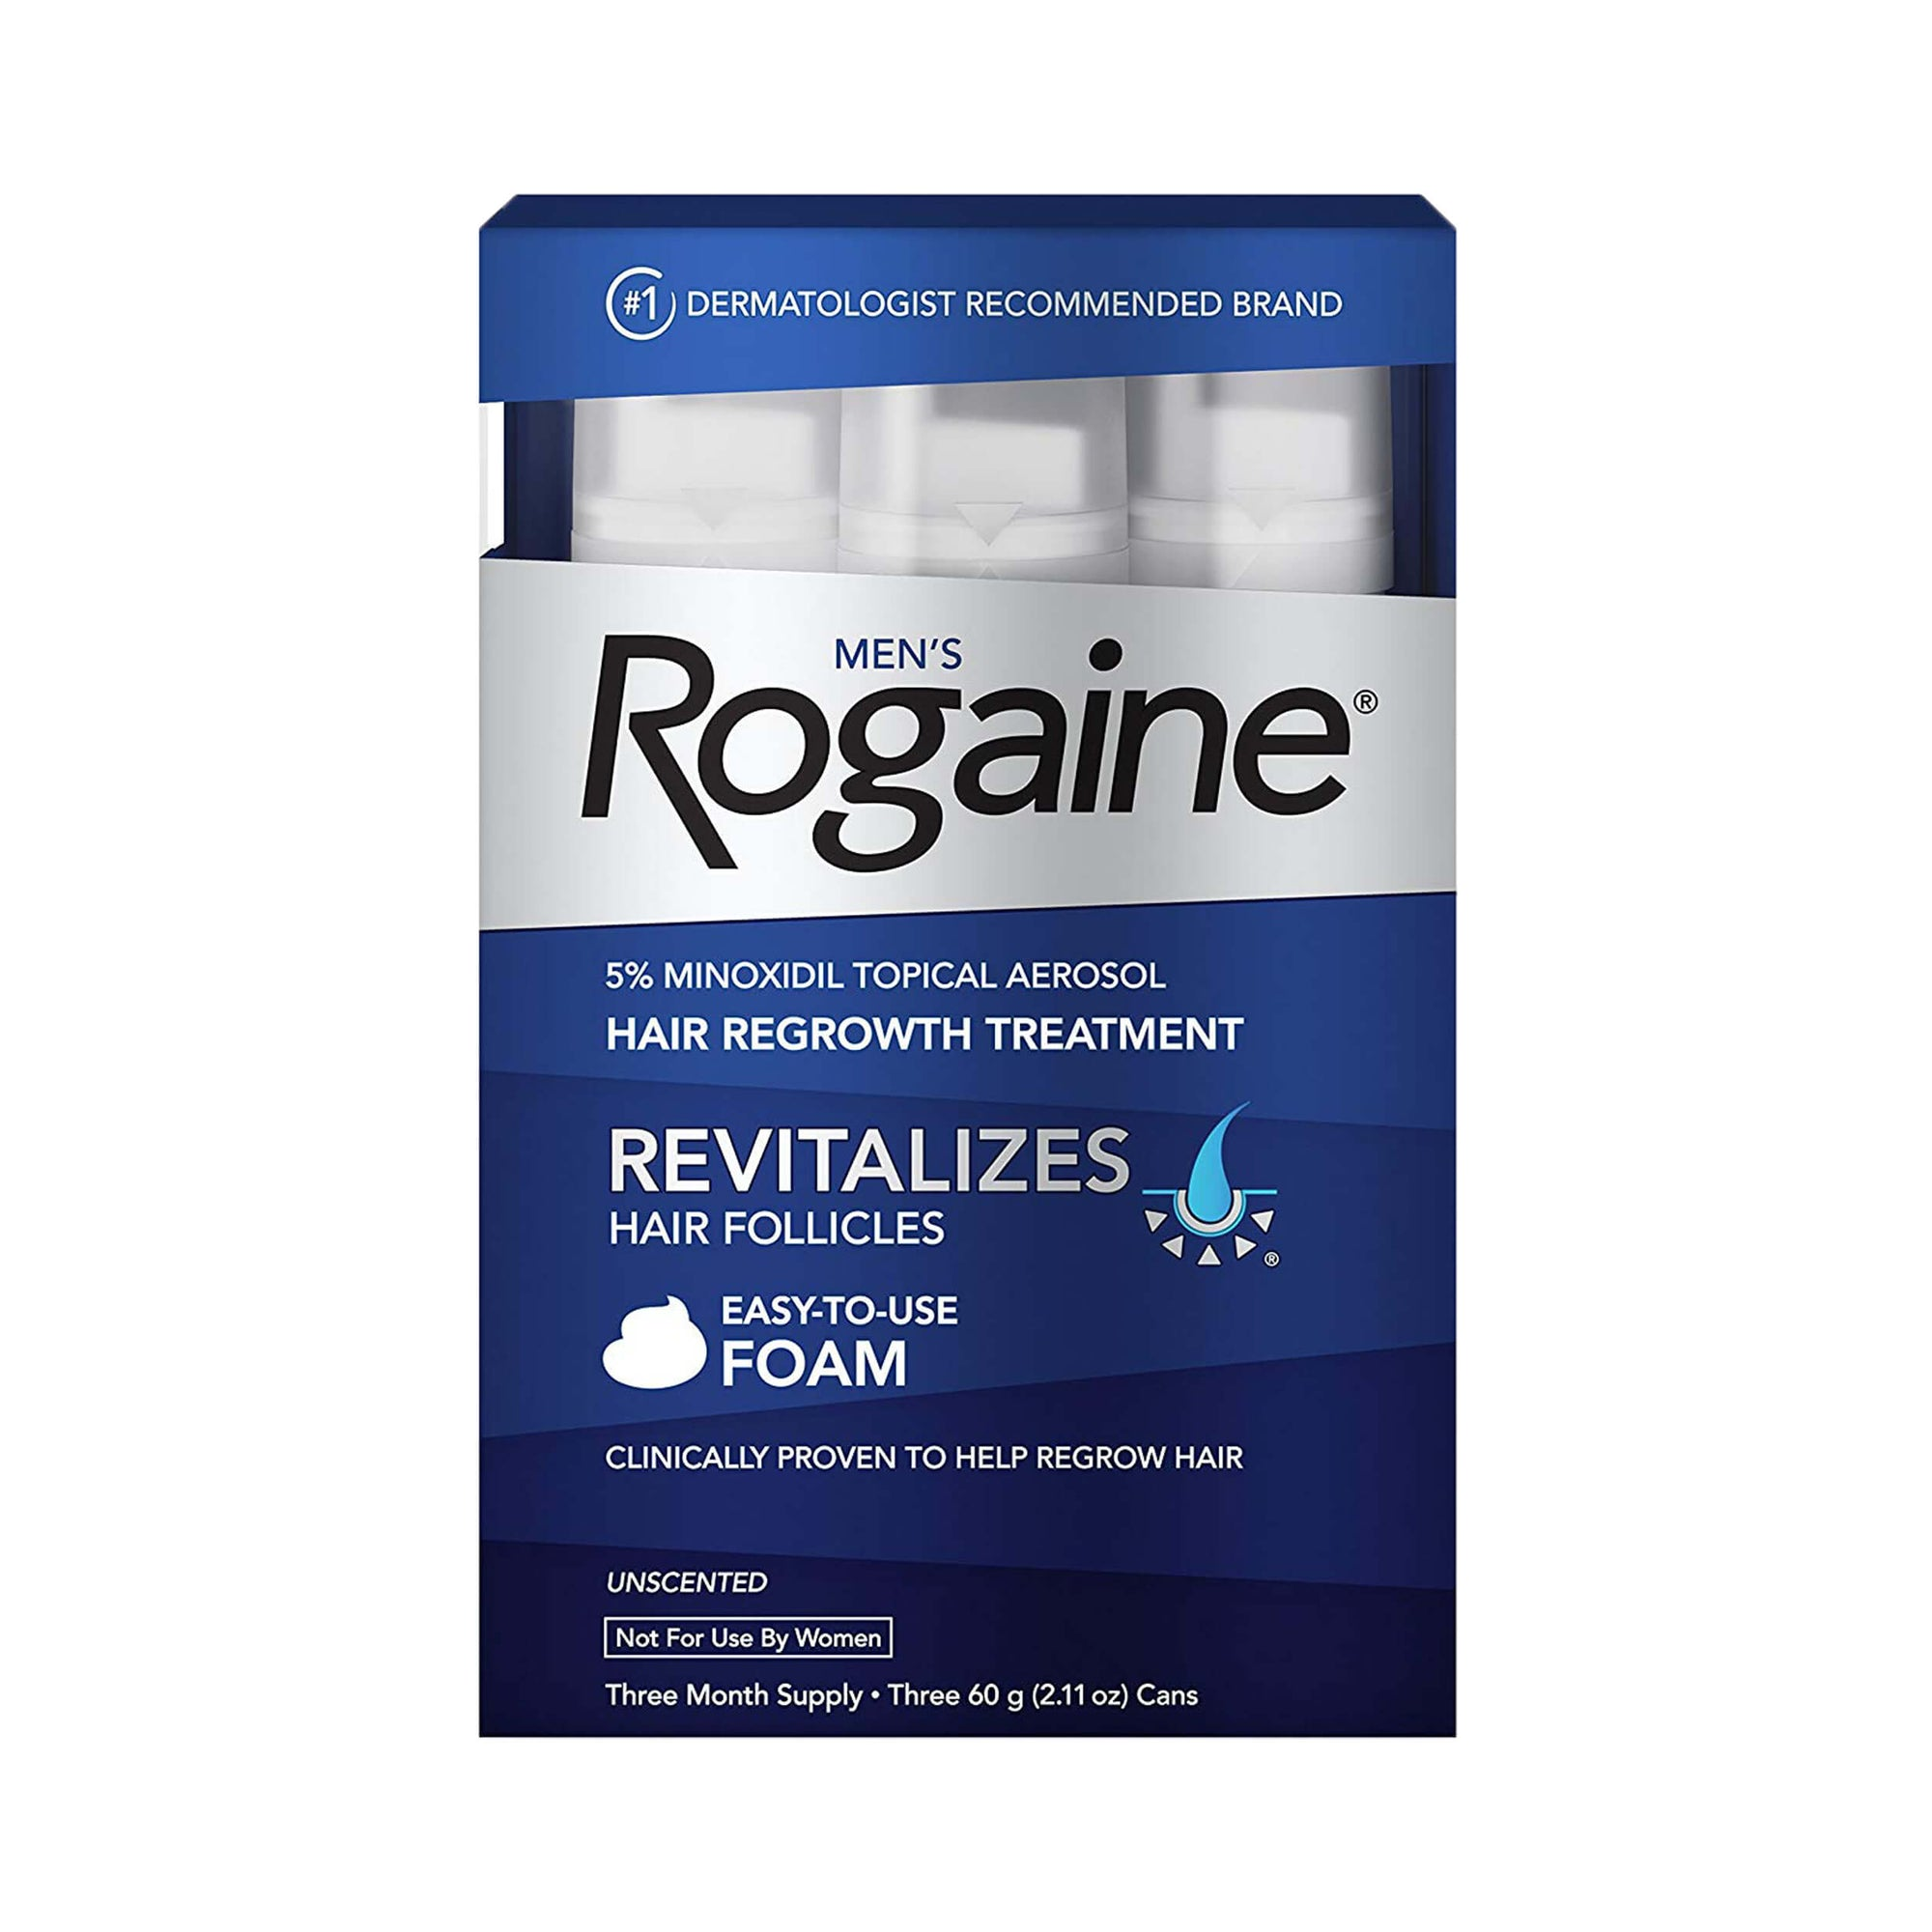 Rogaine Men's Rogaine 5% Minoxidil Unscented Foam for Hair Loss and Hair Regrowth 3-Month Supply